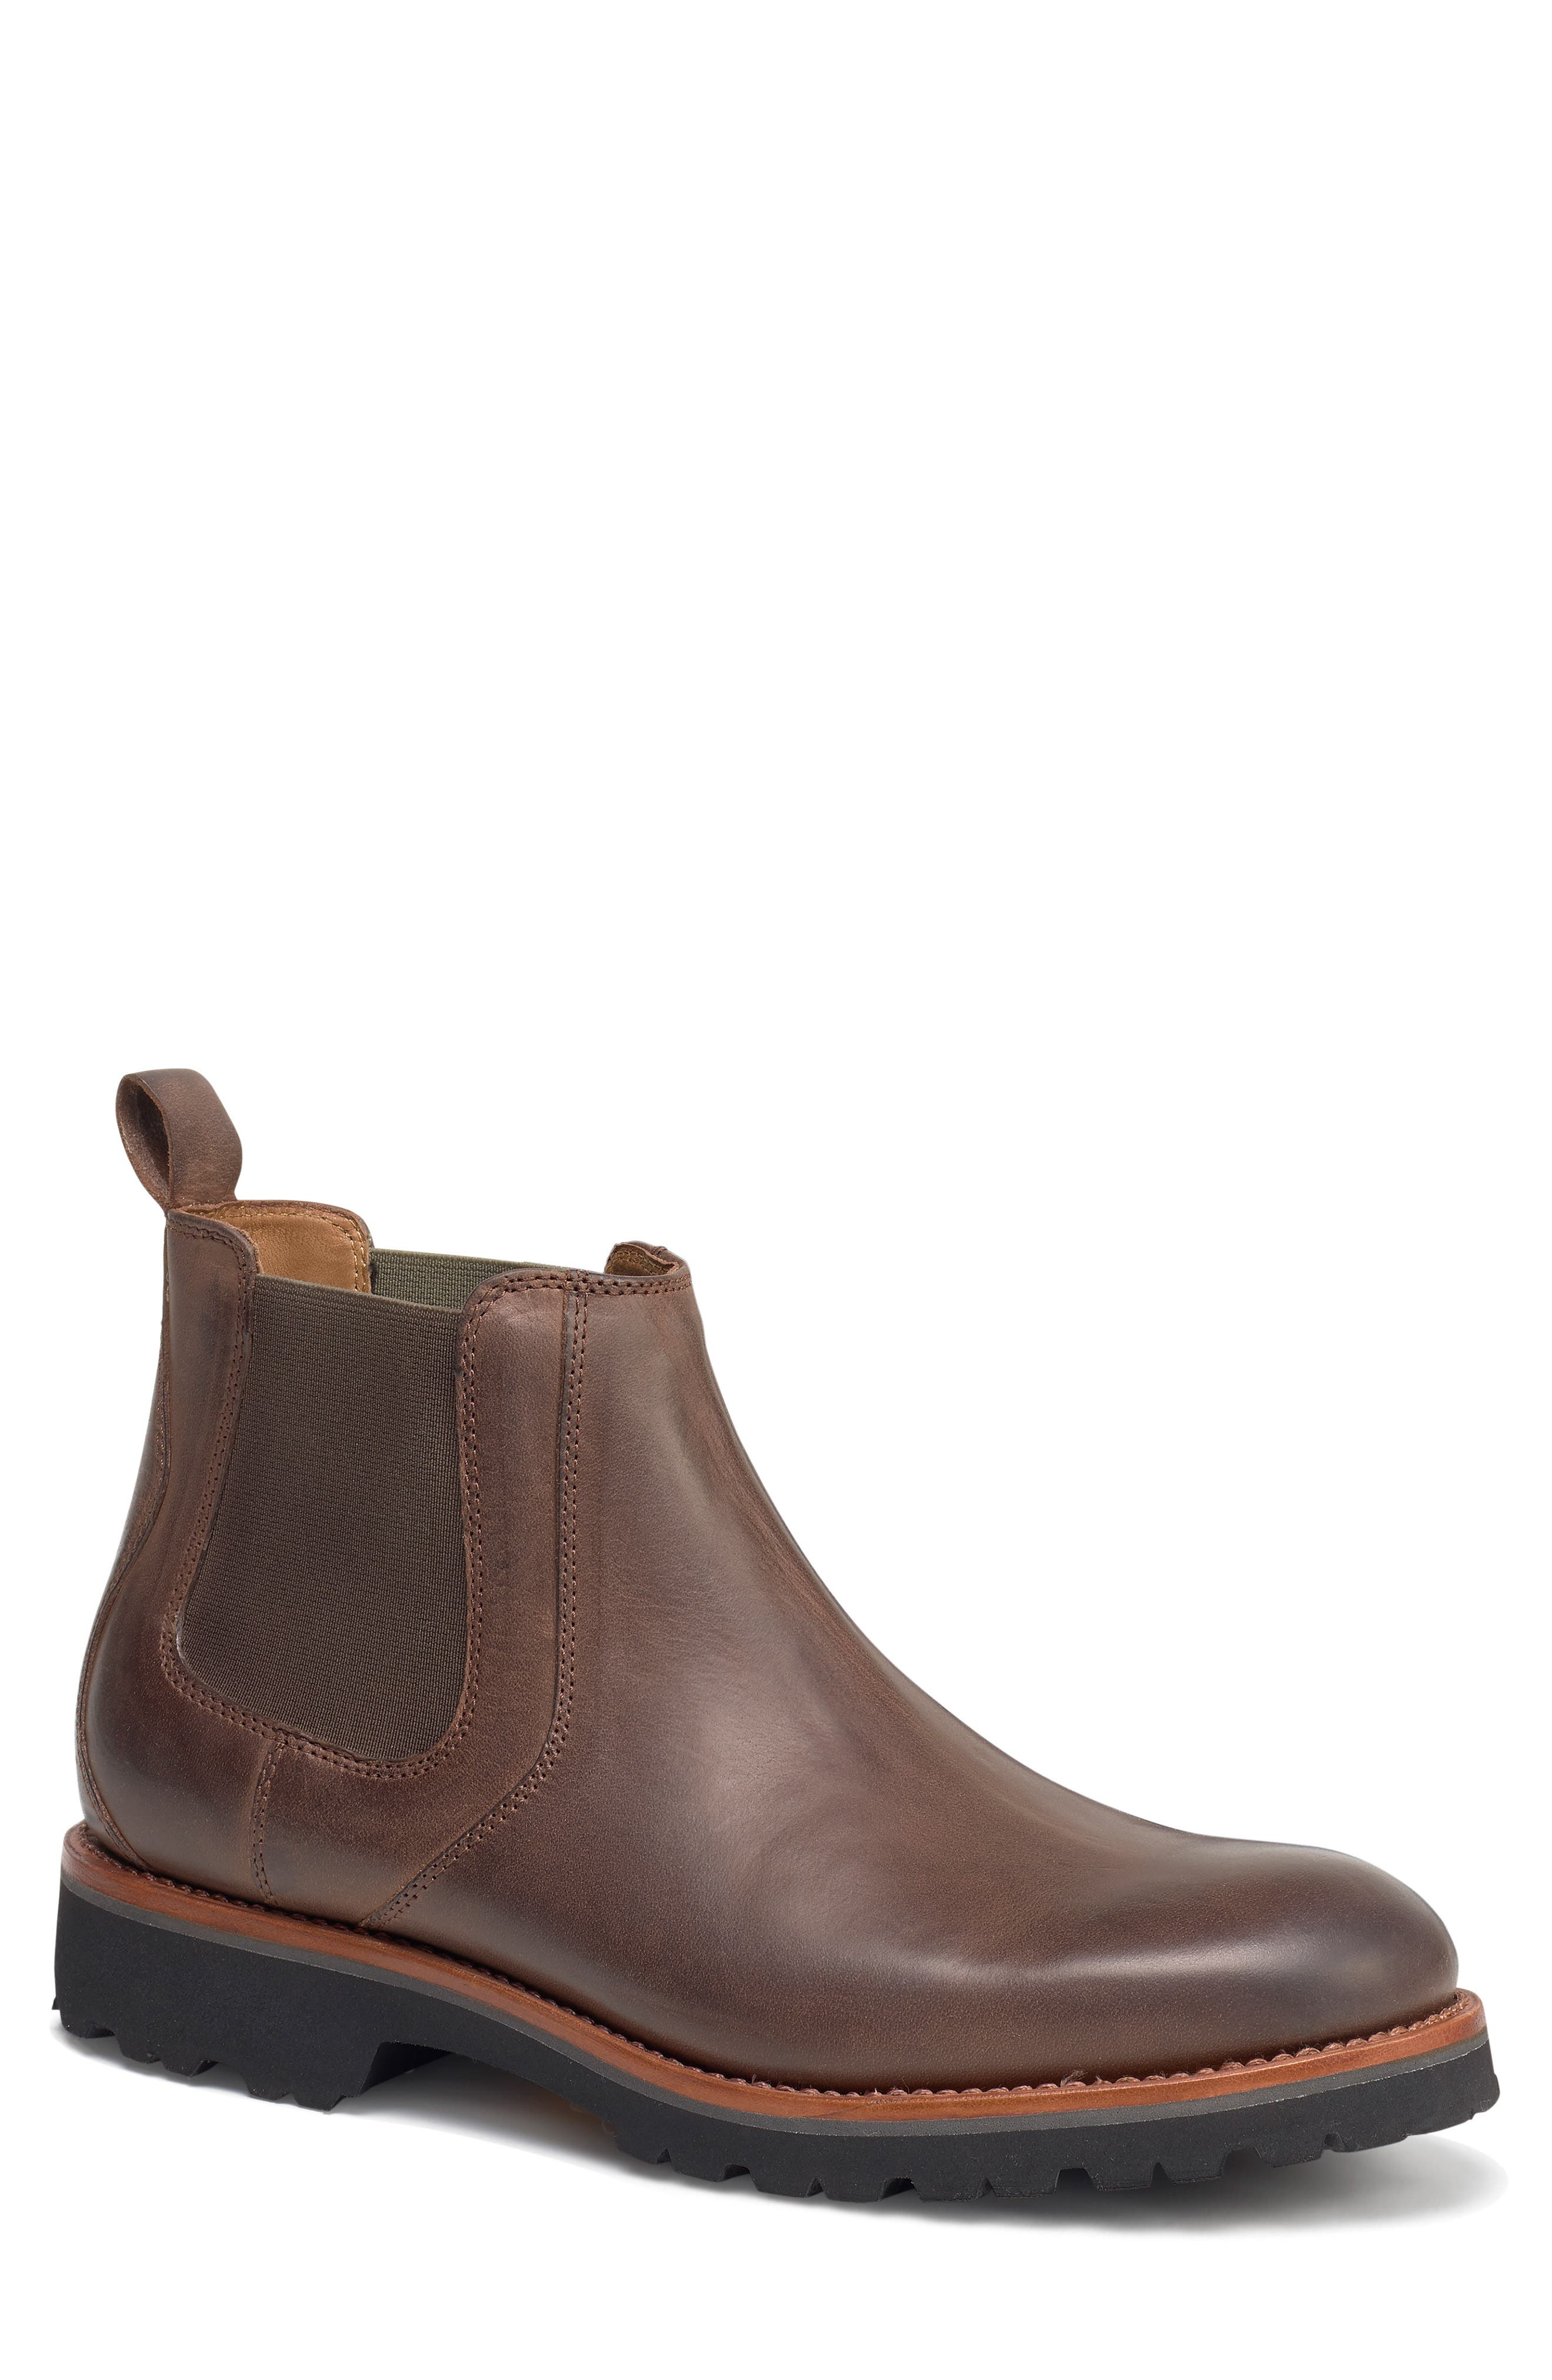 Hastings Lugged Chelsea Boot,                             Main thumbnail 1, color,                             BROWN LEATHER